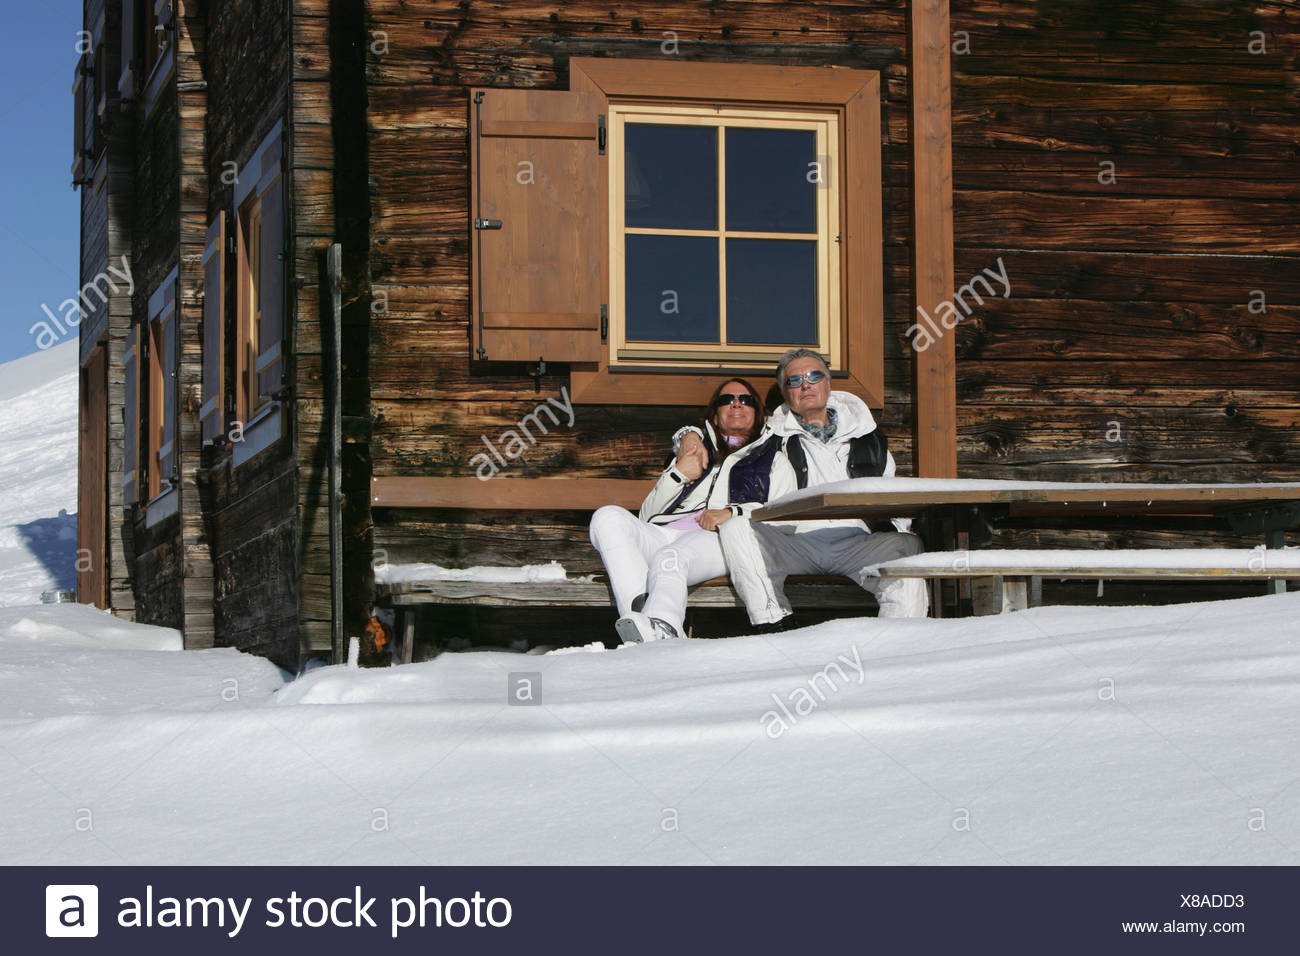 Couple relaxing outdoors at ski chalet - Stock Image